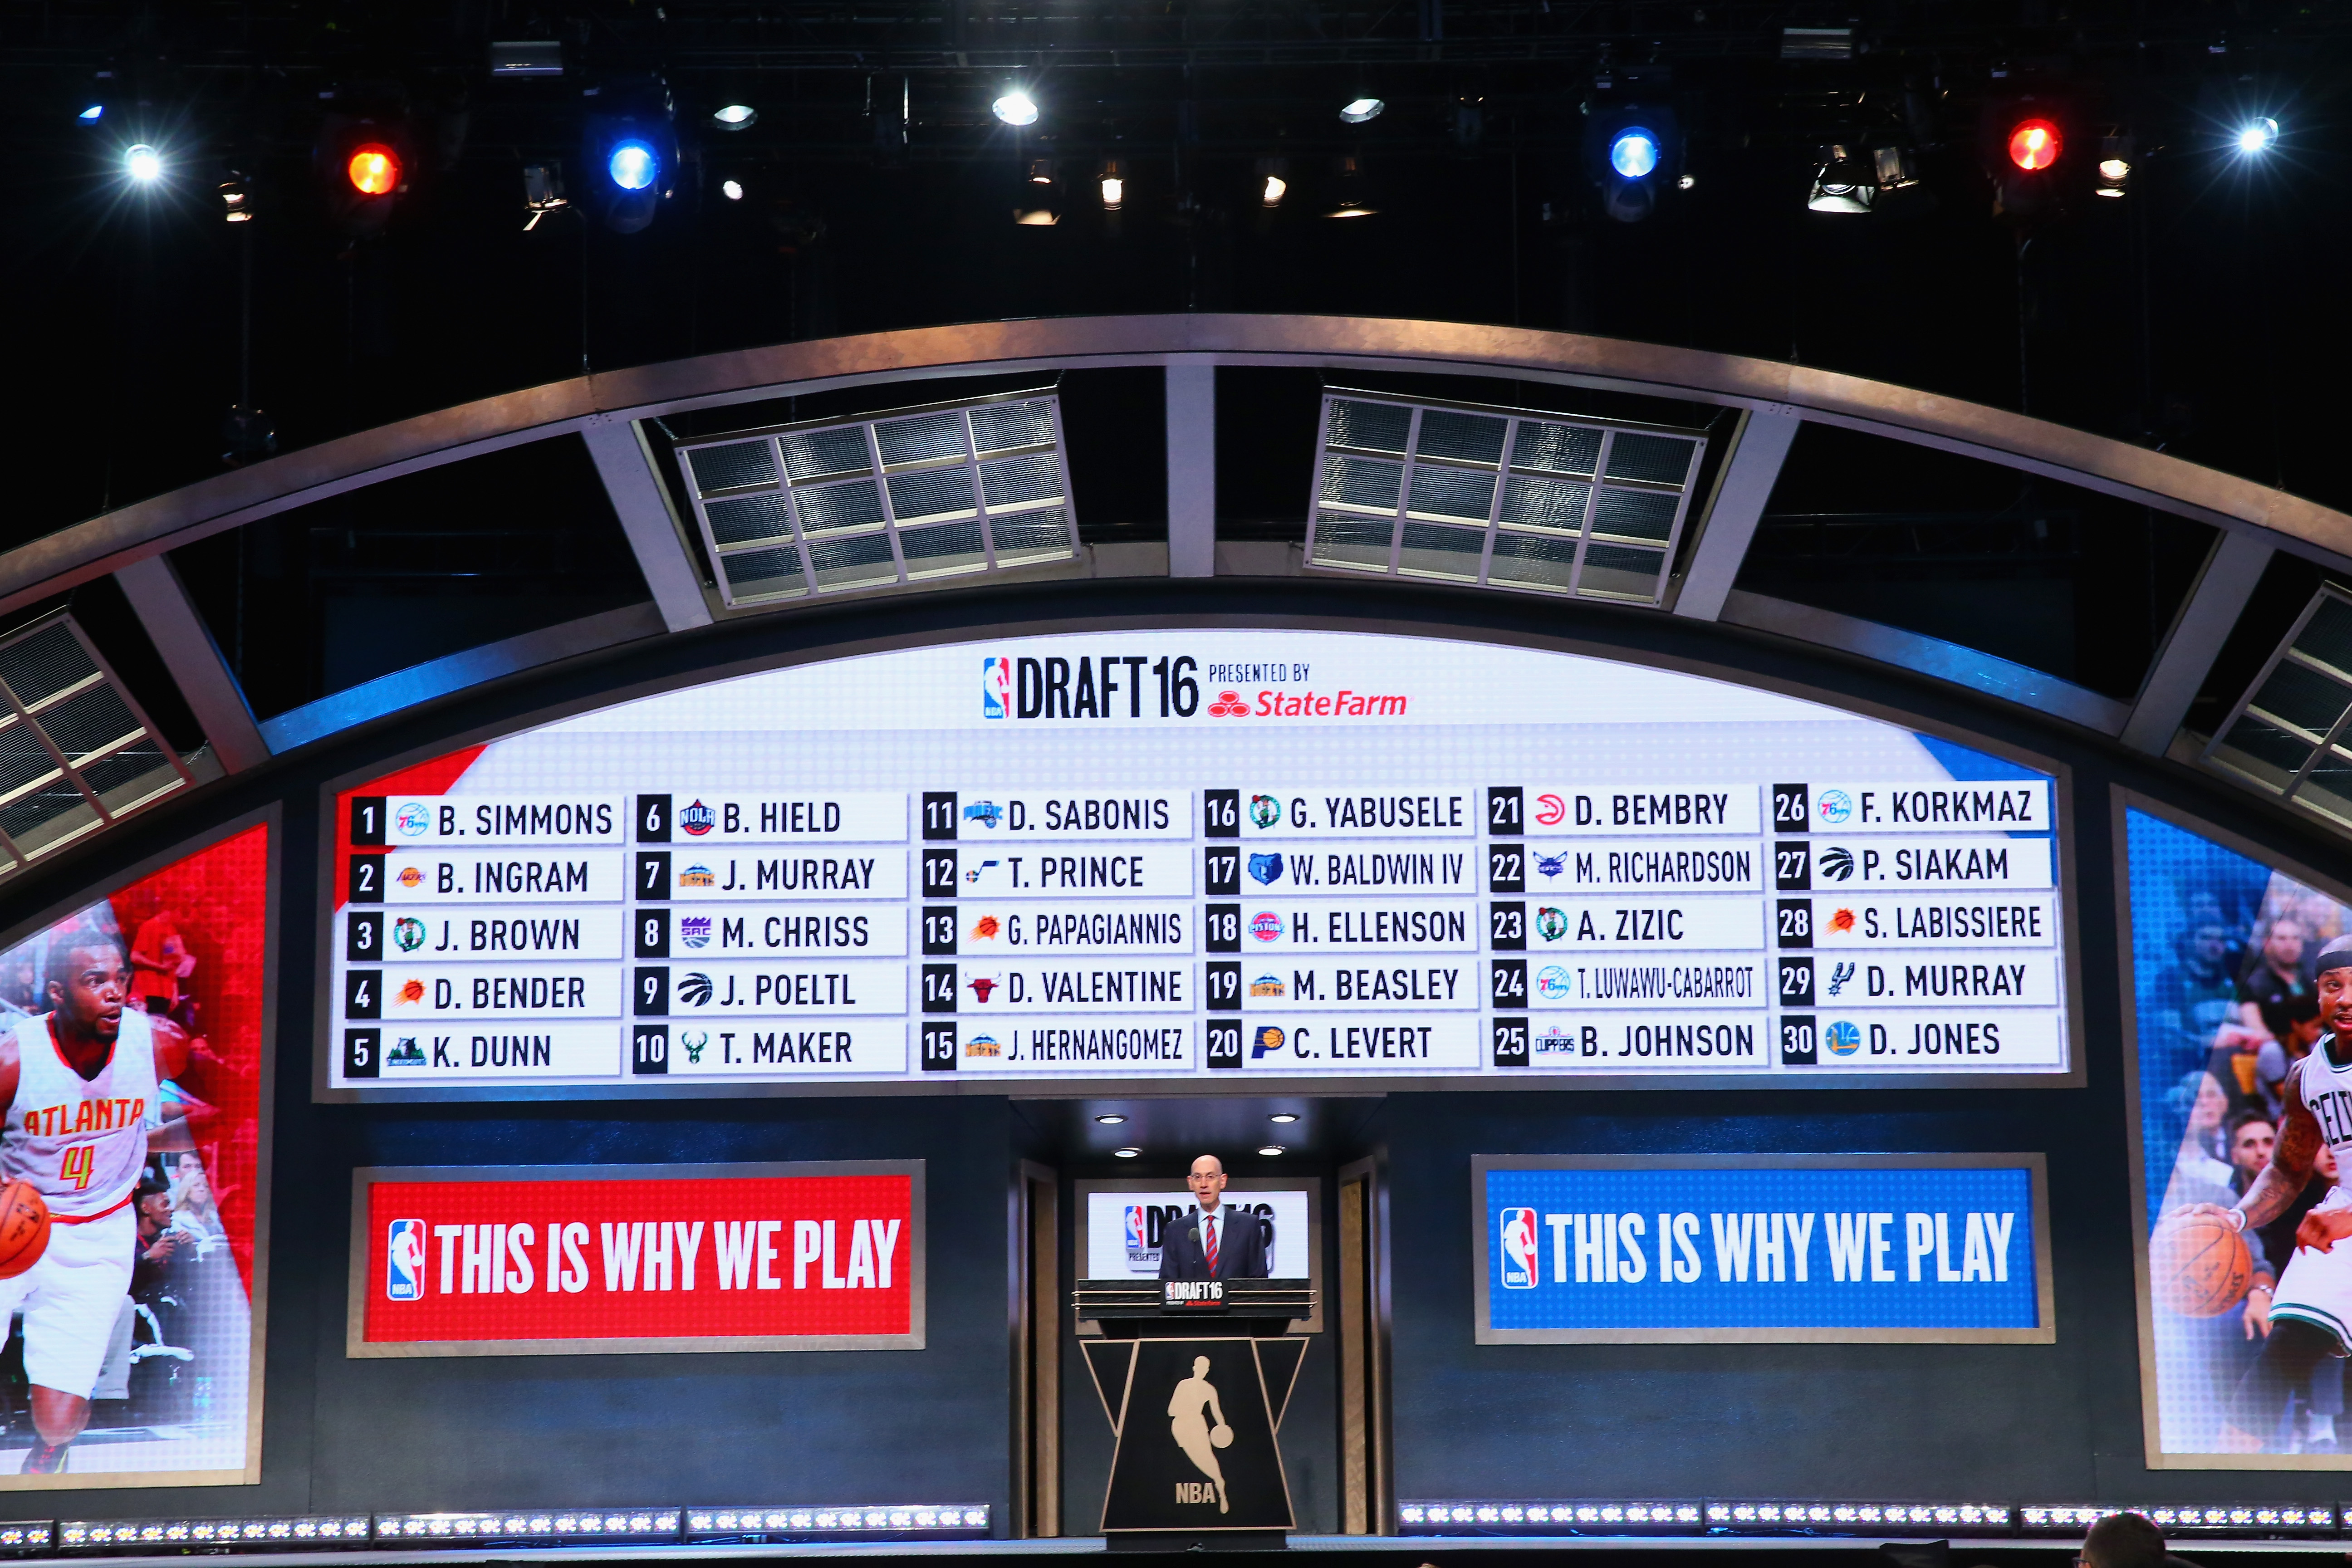 NBA Draft Lottery 2017: Start Time, TV Channel, Live Stream, Odds For Each Team